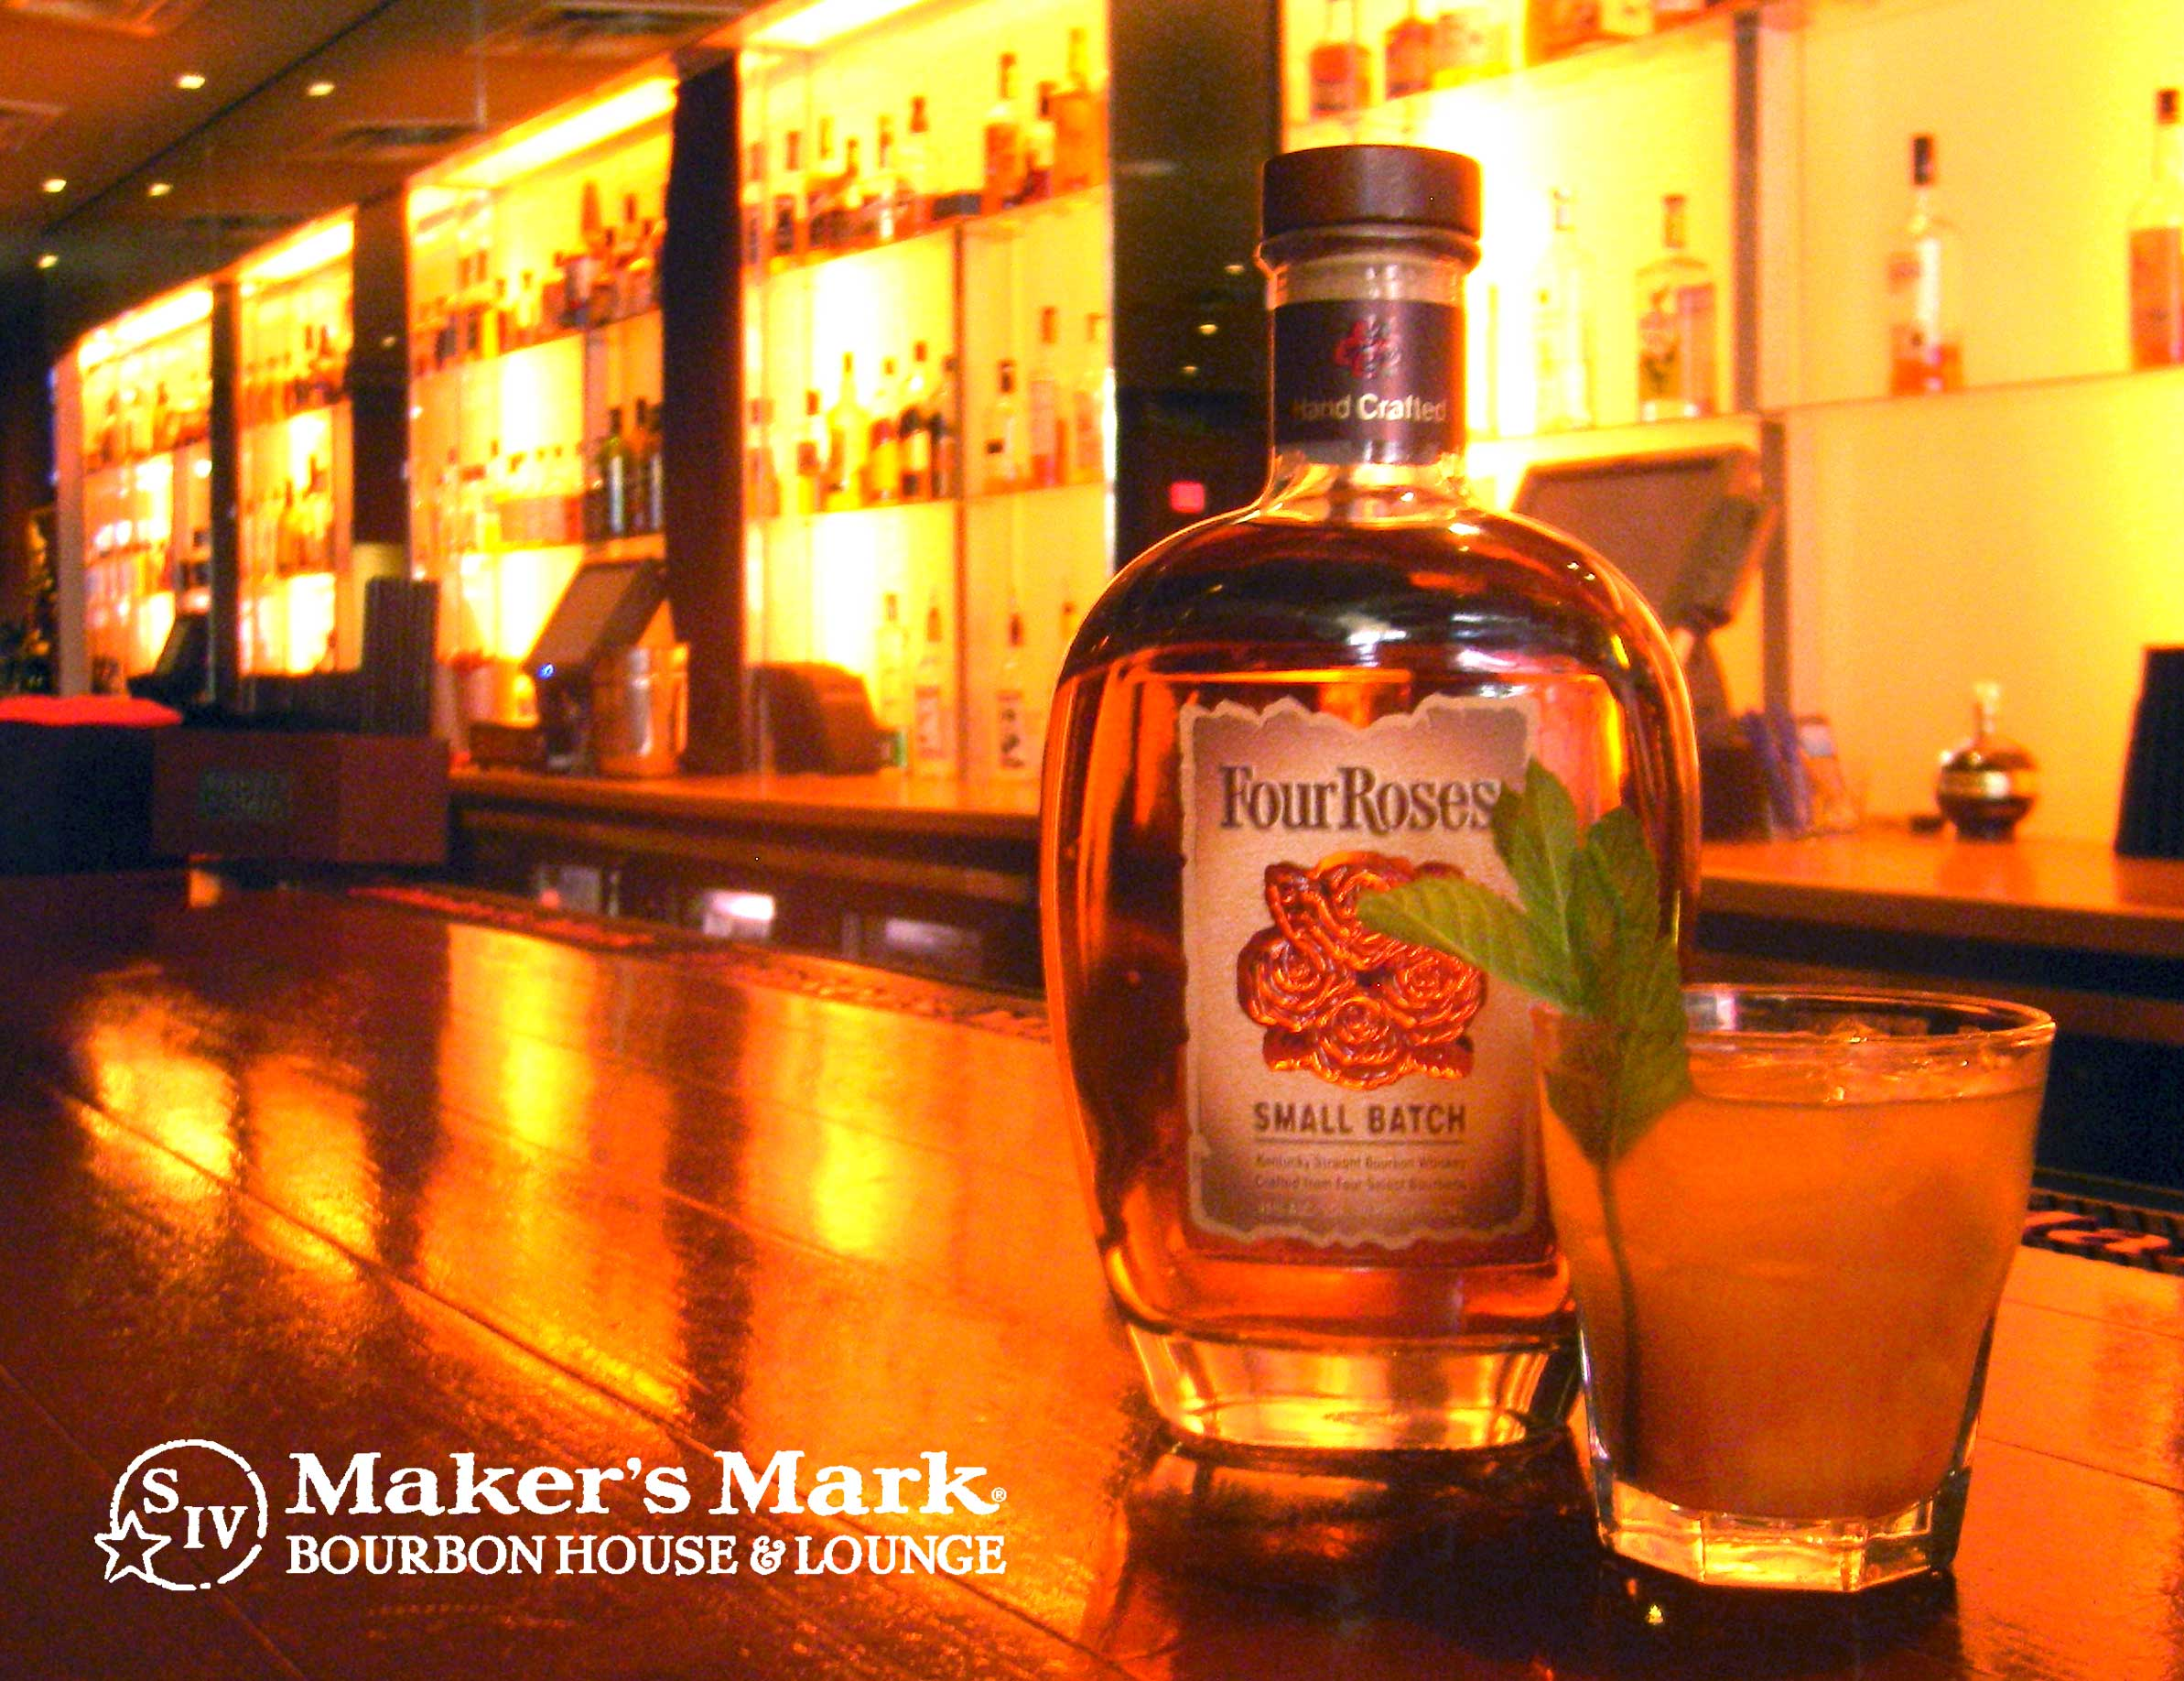 Maker's Mark Bourbon House & Lounge - Bar - 446 South 4th Street, Louisville, KY, United States